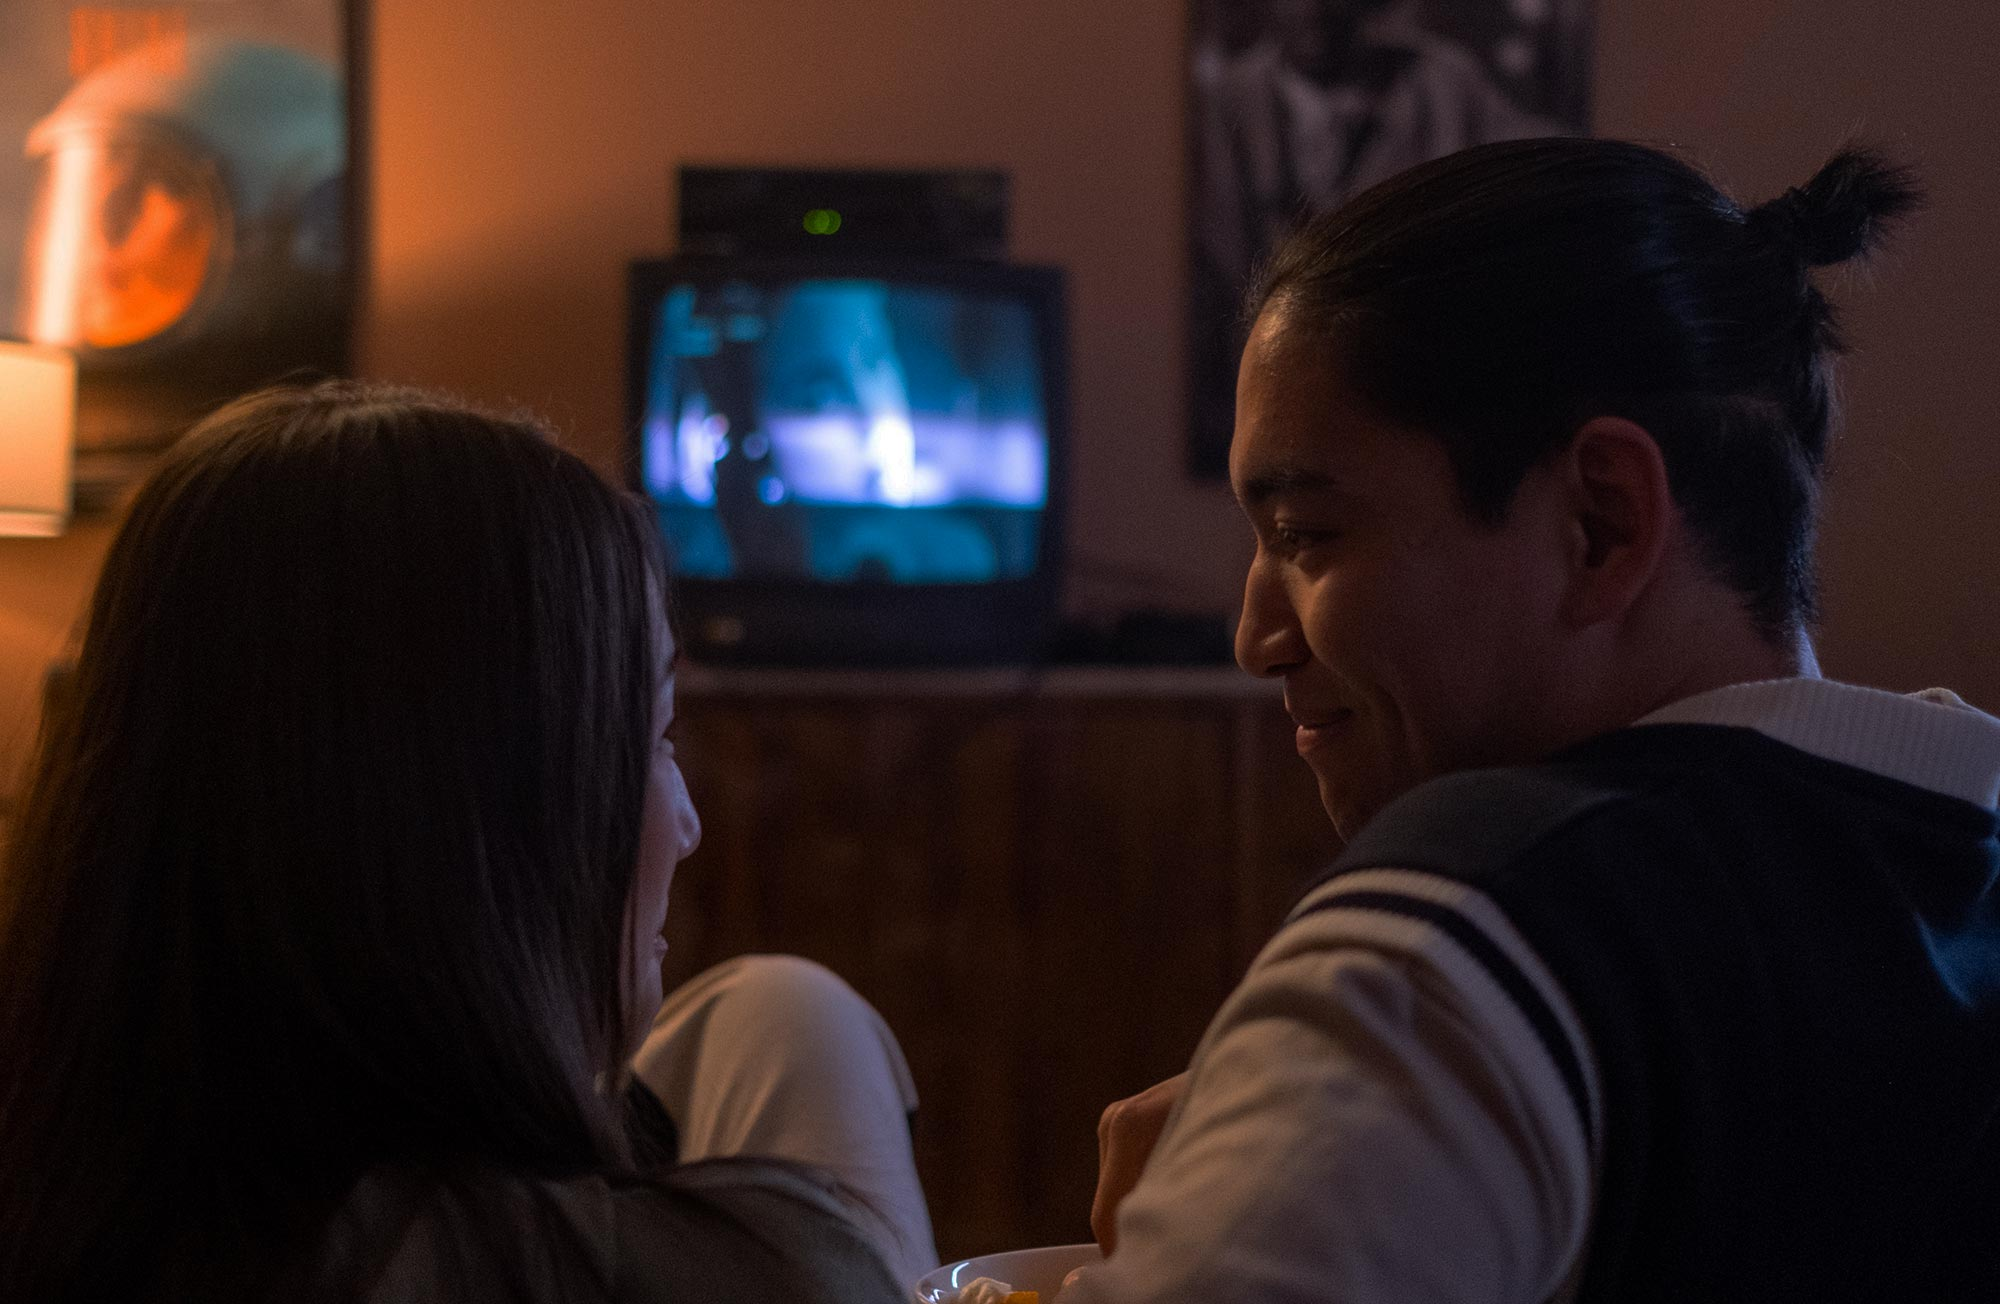 A couple is watching a movie on the television